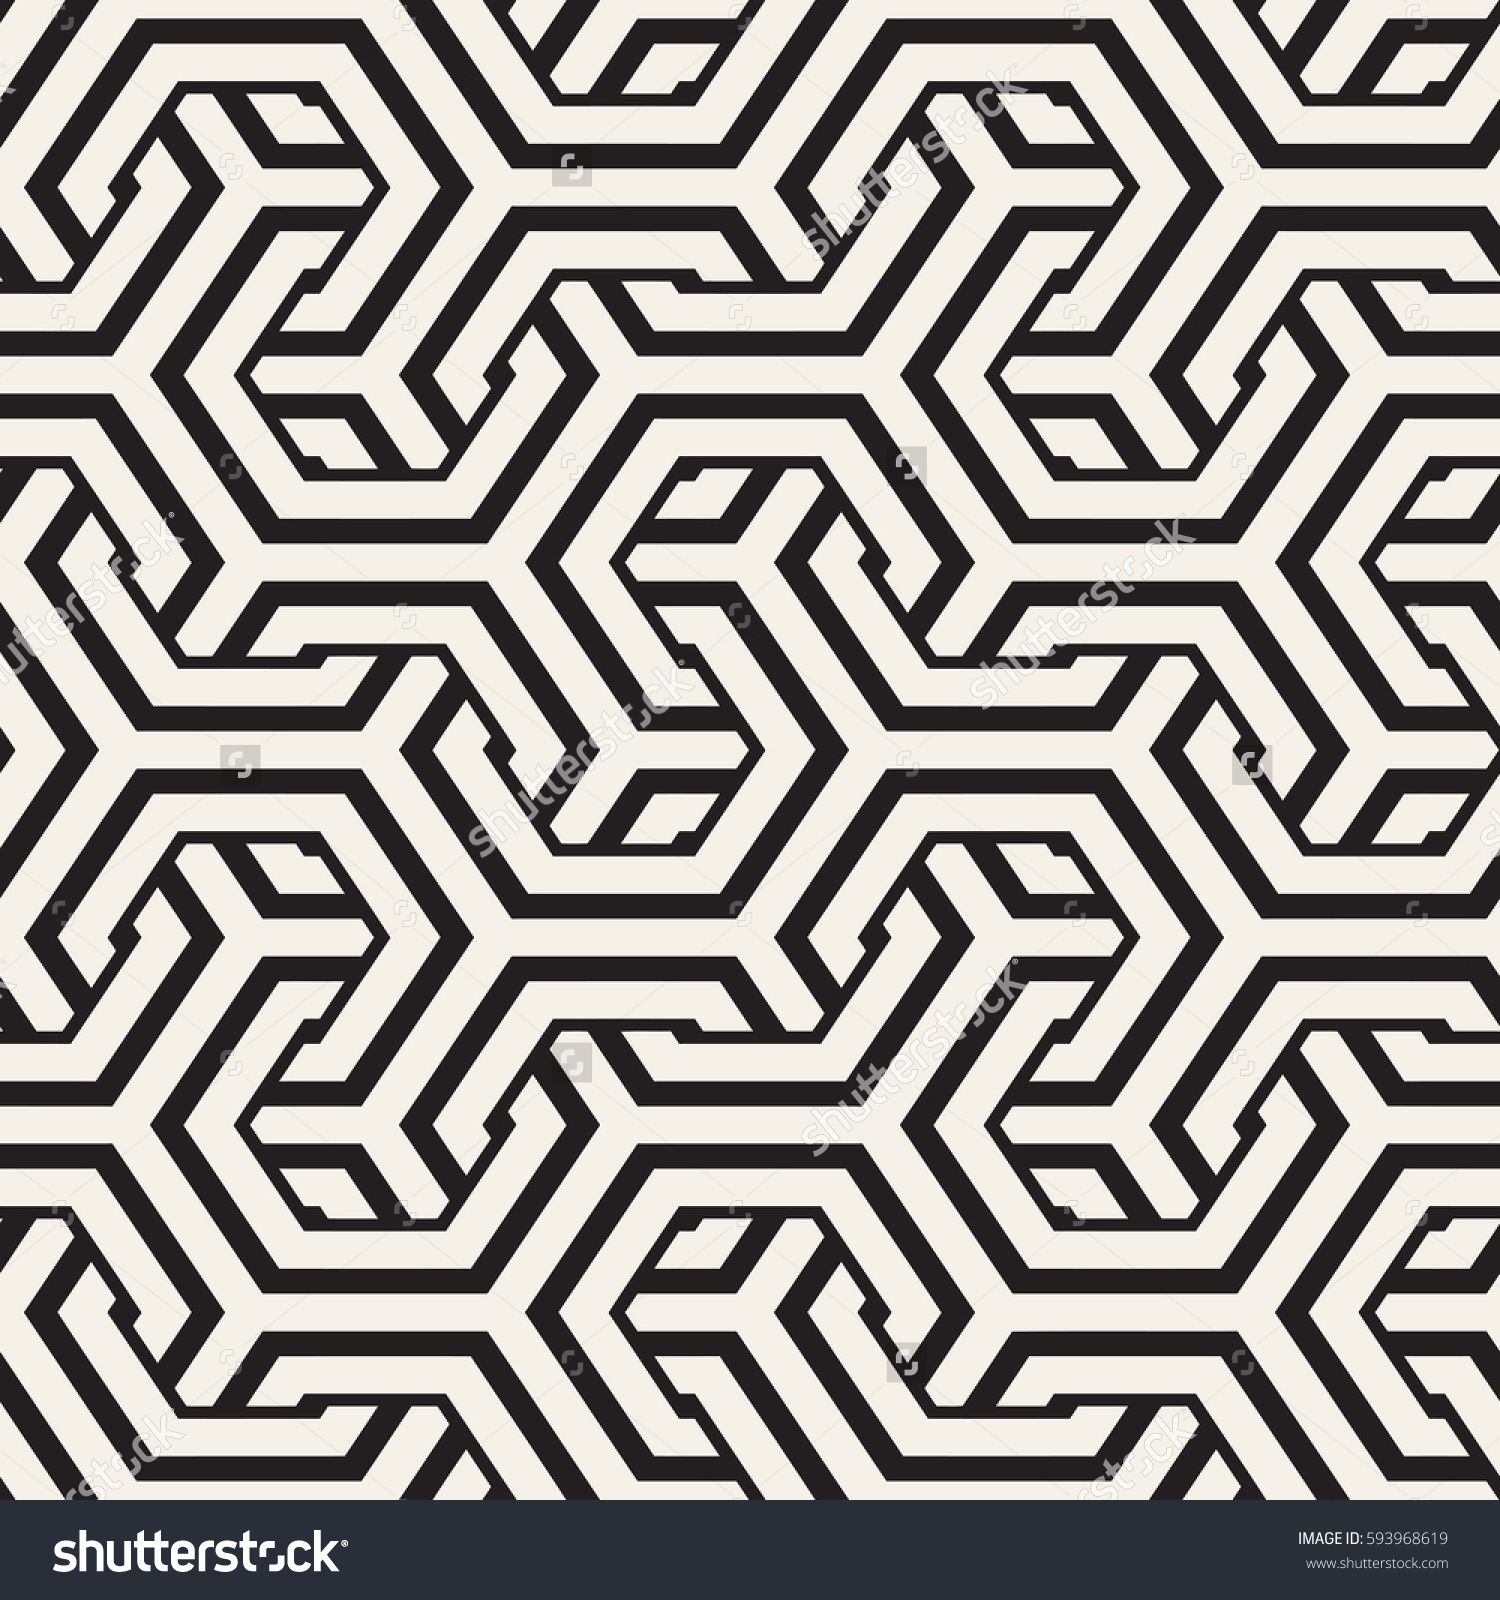 Vector Seamless Interlacing Lines Pattern Modern Stylish Texture Repeating Geometric Background With Hexagonal Lattice